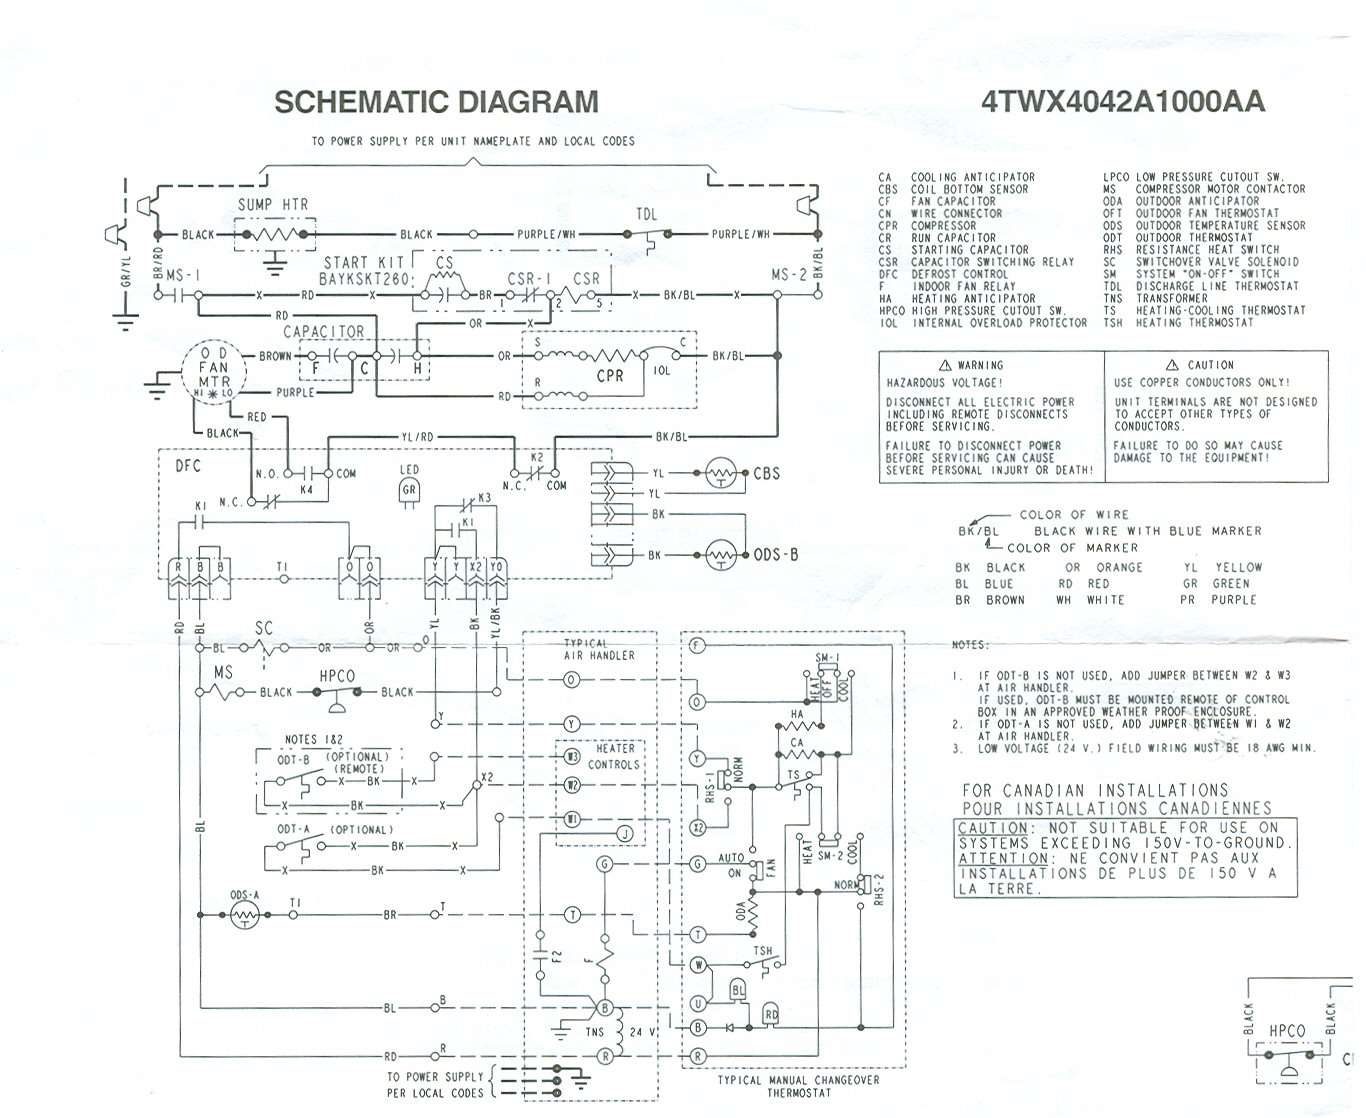 hp correct tstat wiring for xl14, defrost cycle trouble trane heat strip wiring diagram at bayanpartner.co